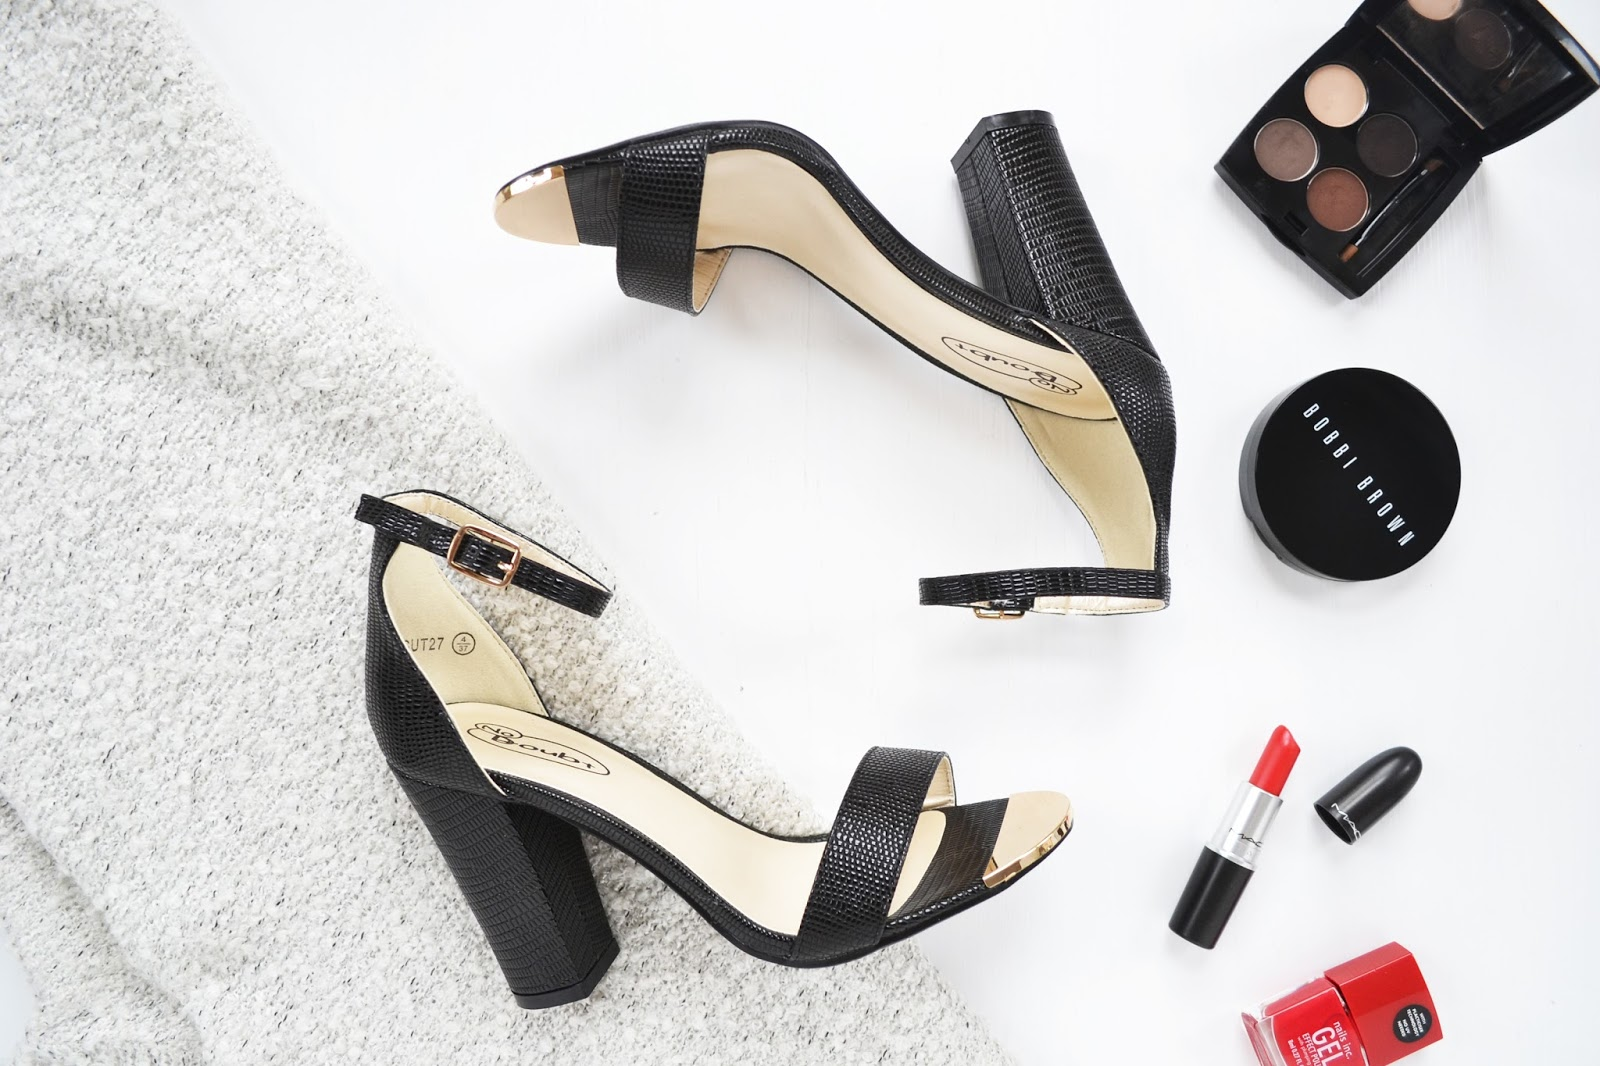 black high heels with a block heel